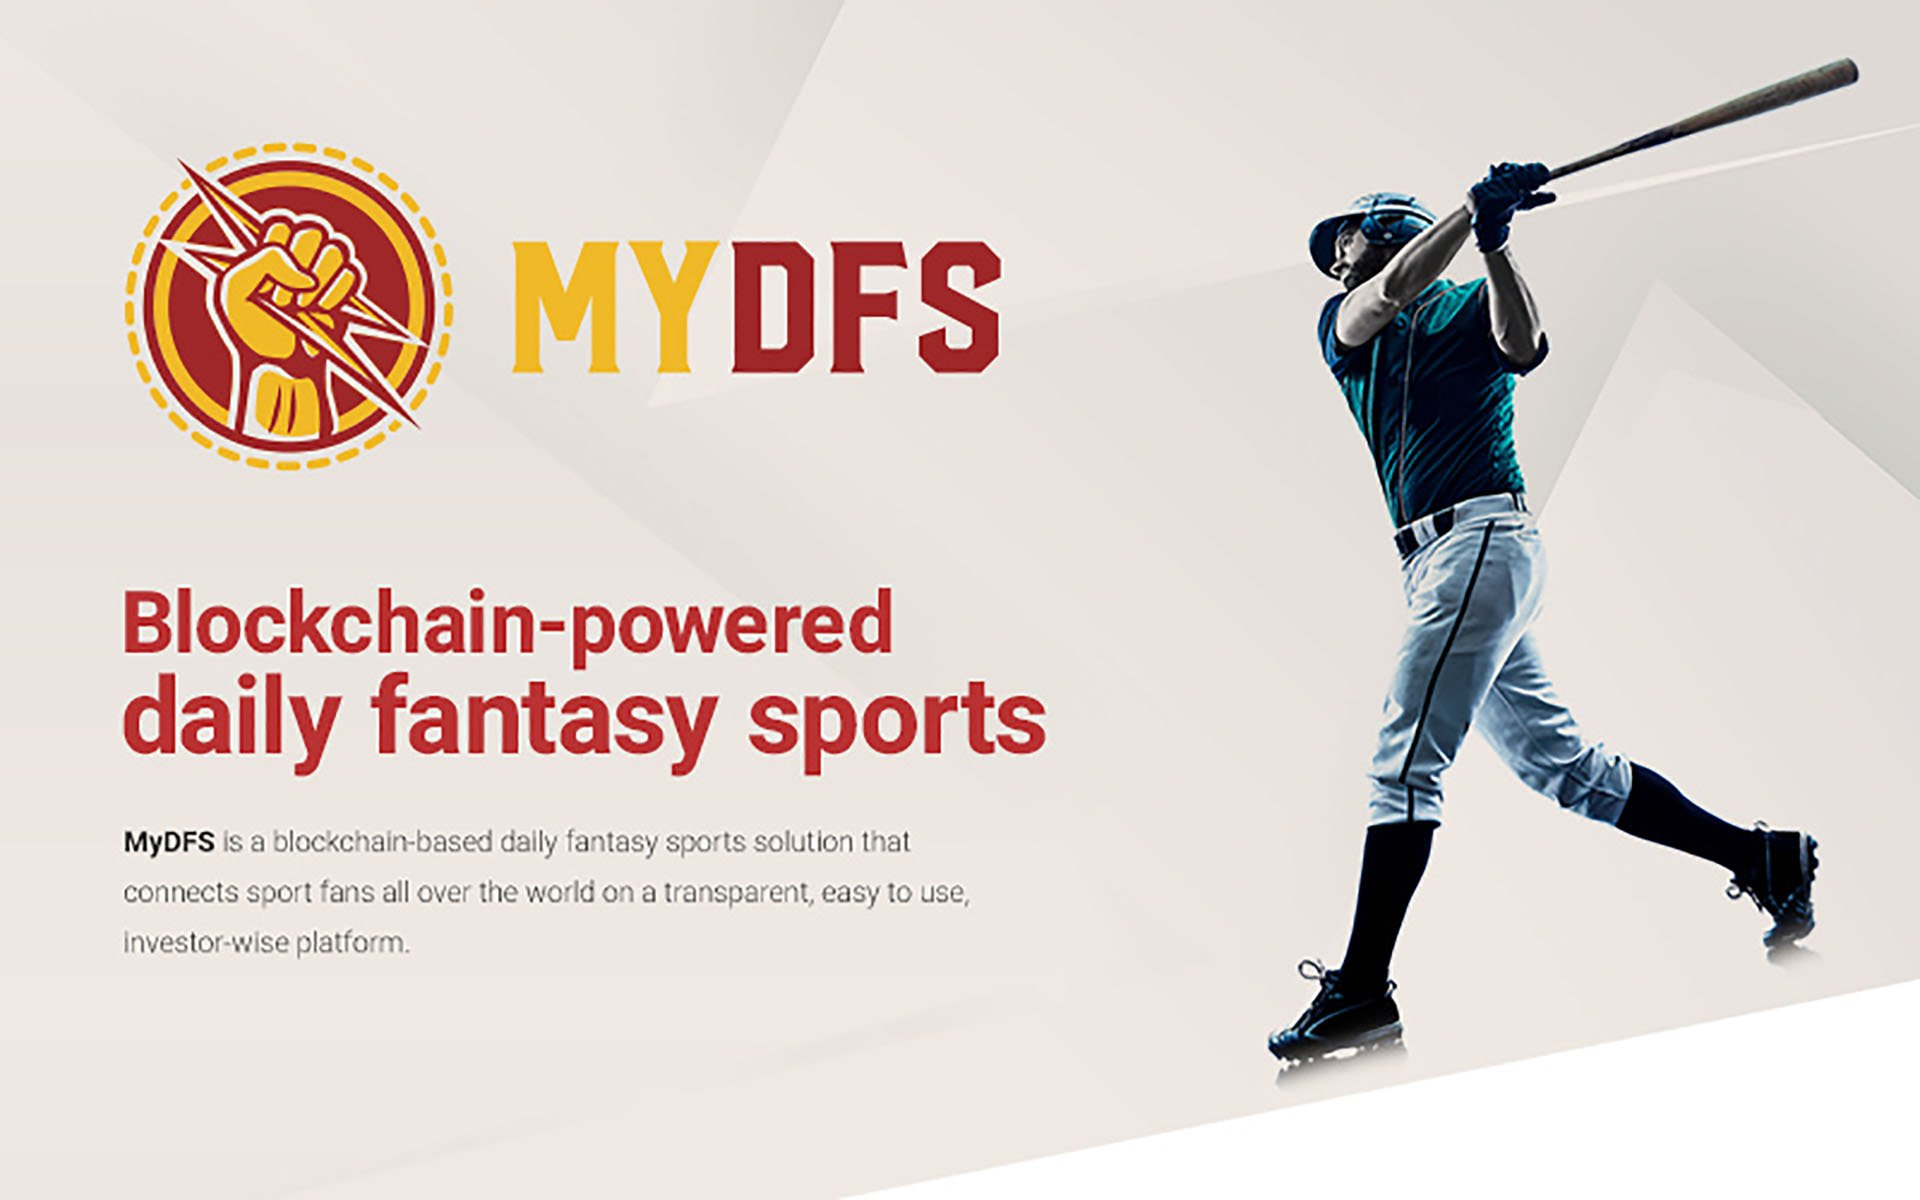 Creators of uTrener and KHL Fantasy Sport Apps Introduce Blockchain Powered Daily Fantasy Sports Platform MyDFS